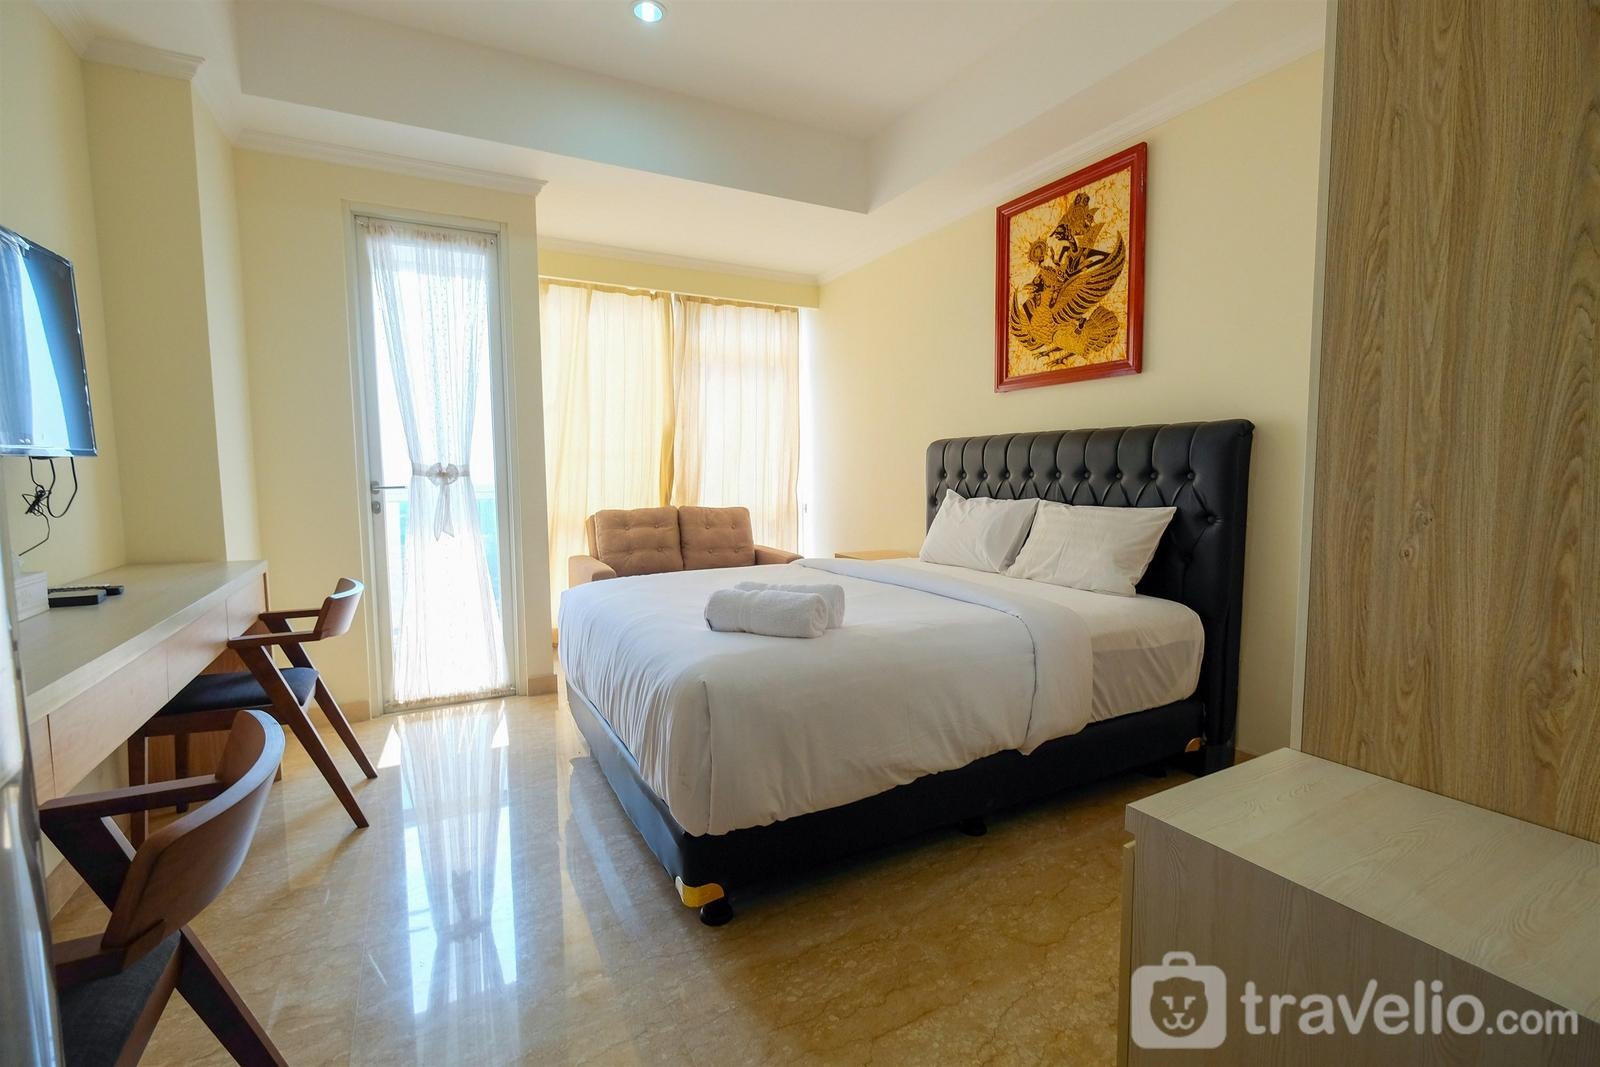 Menteng Park Apartment - Lovely Studio Room at Menteng Park Apartment By Travelio